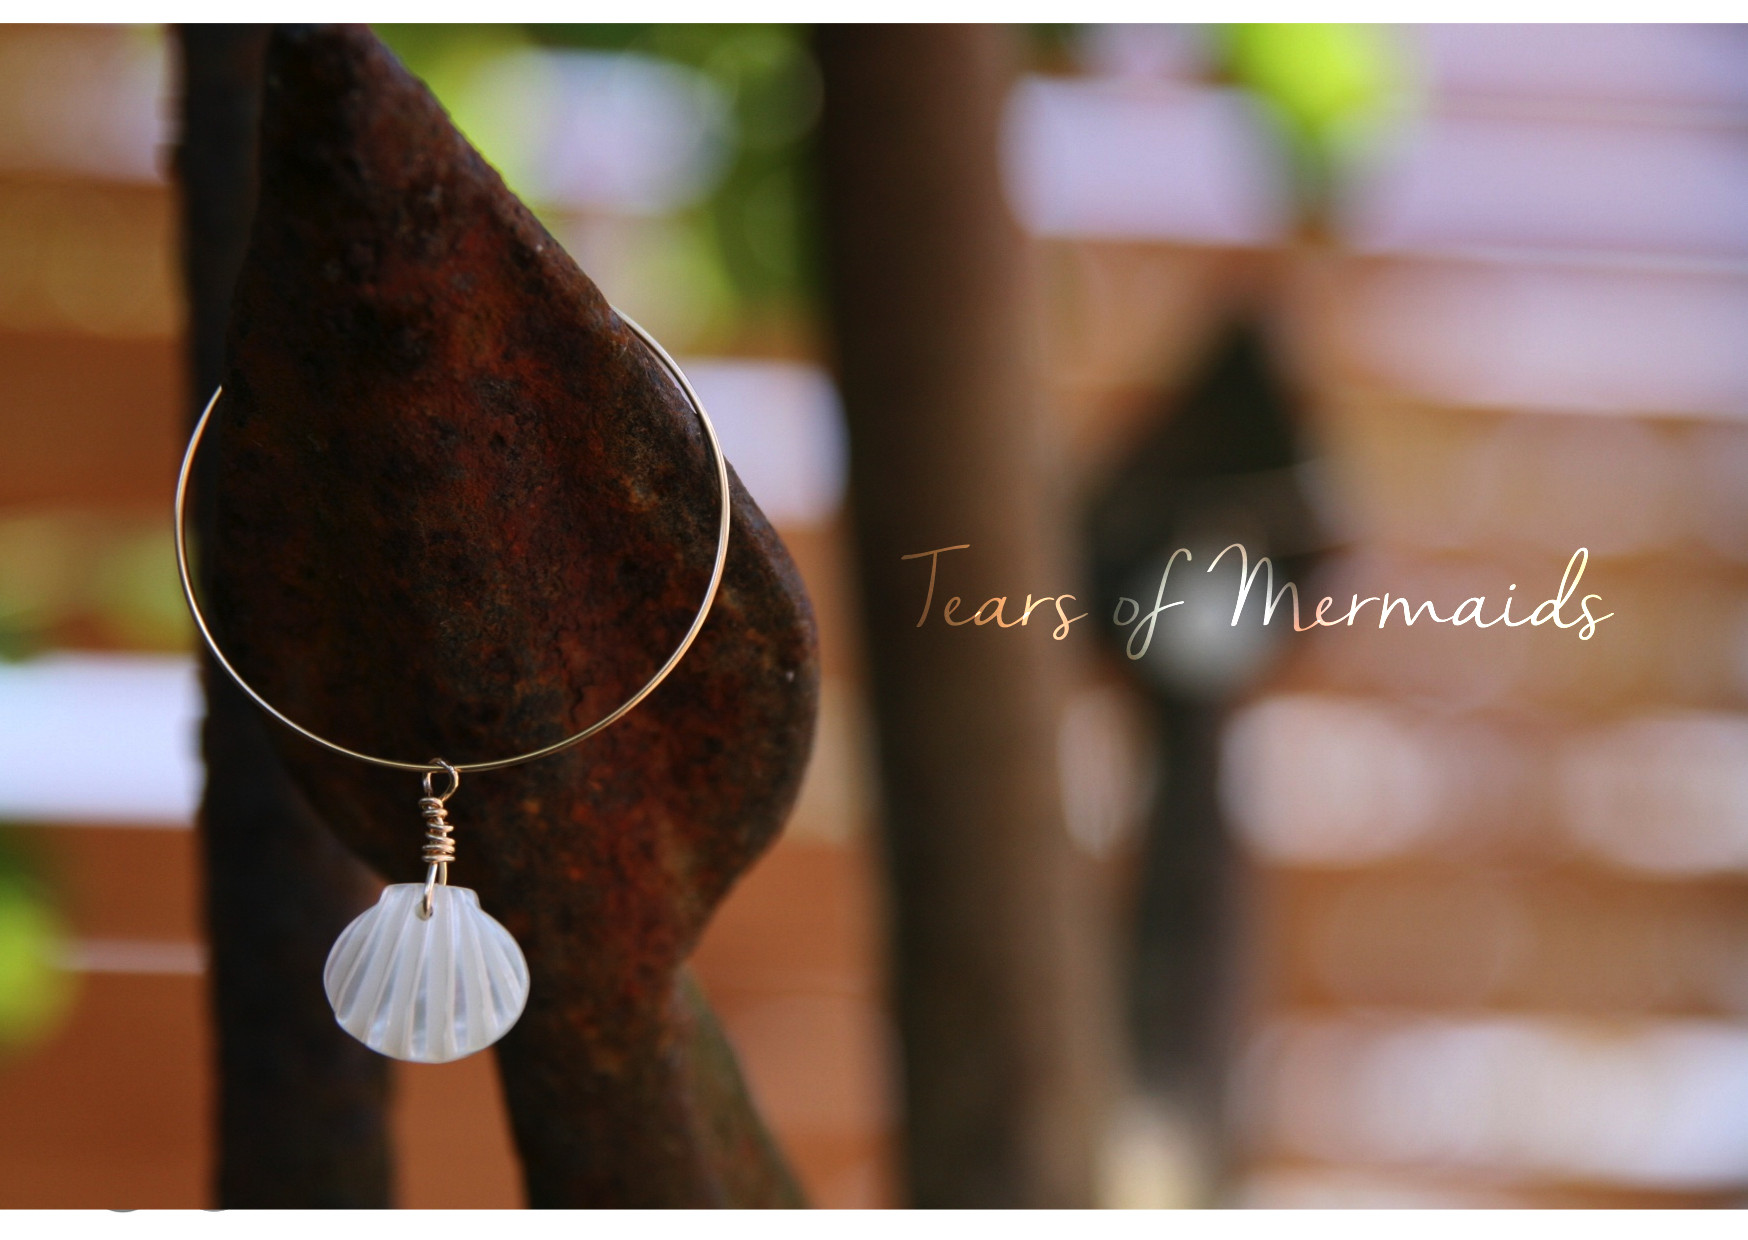 Tears of Mermaids Jewellery - にんぎょのなみだ -